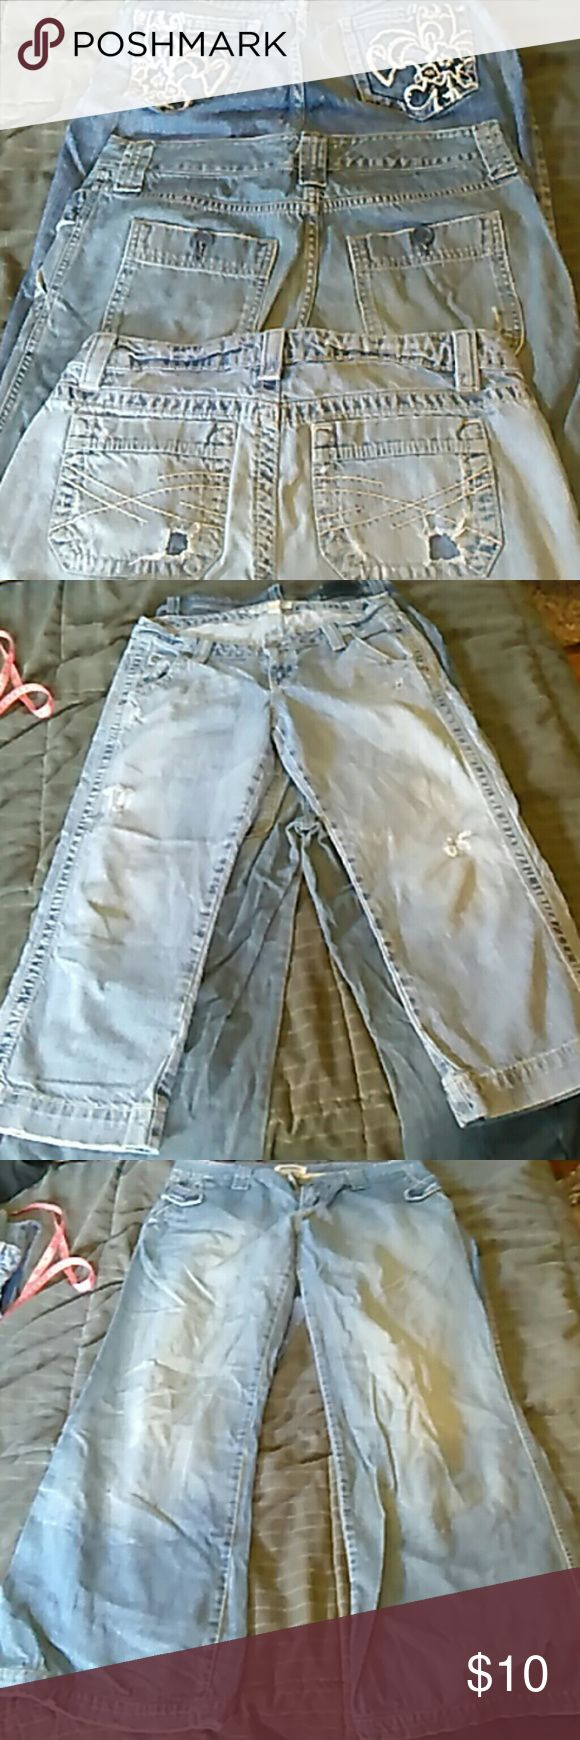 3 pairs jeans Aero Capri distressed size 7/8 light wear. Abercrombie and Fitch wide leg Jean trousers size 8. Broken button on back pocket. Red River size 7 Capri. Light stretching in thigh area. Abercrombie & Fitch Jeans